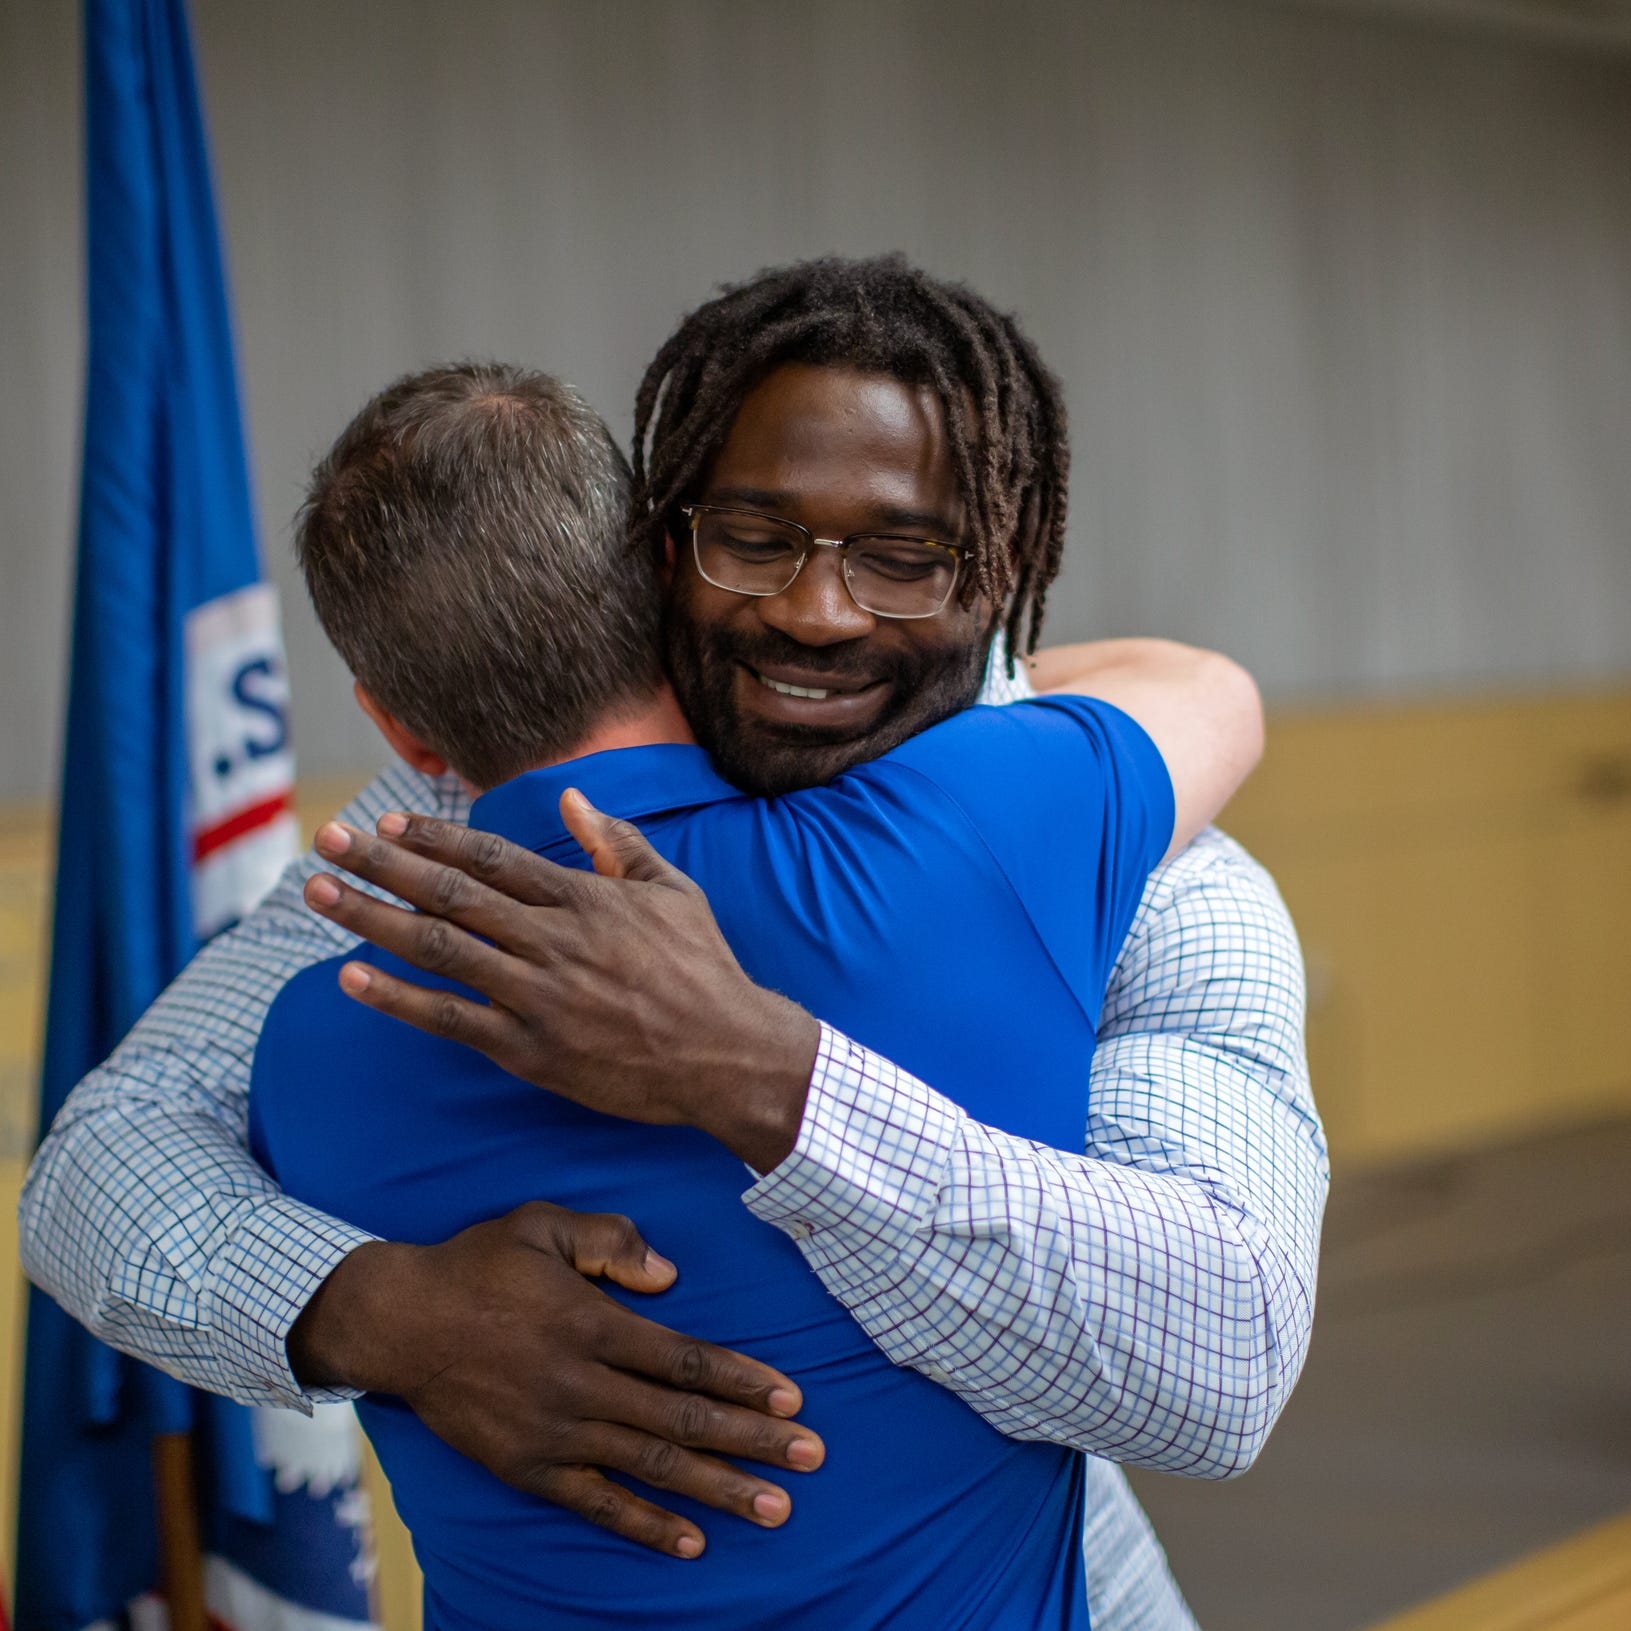 This Detroit Lion fulfills late father's wish, becomes U.S. citizen